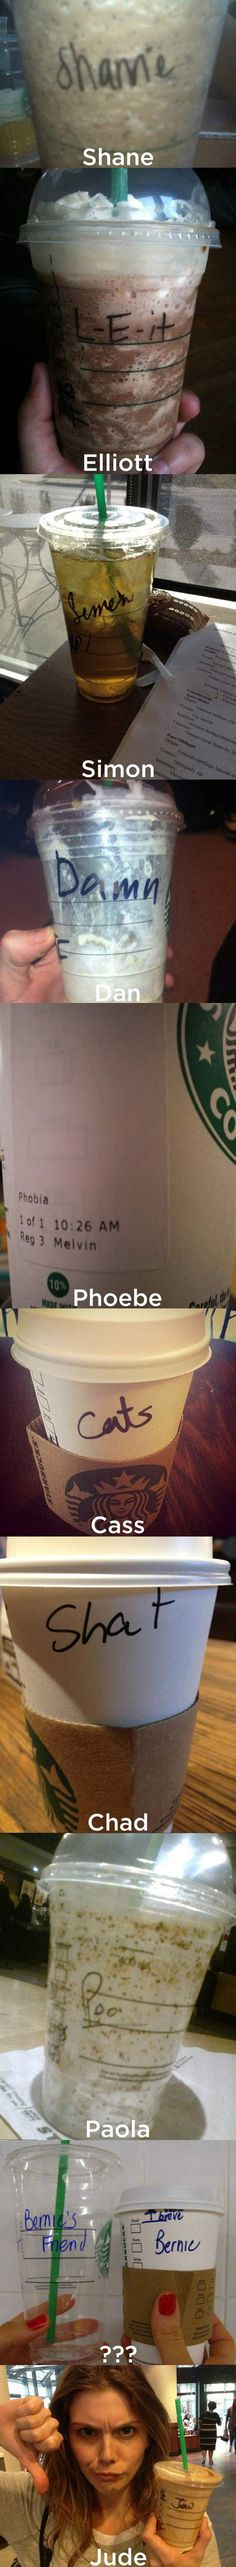 That's not my name, Starbucks!